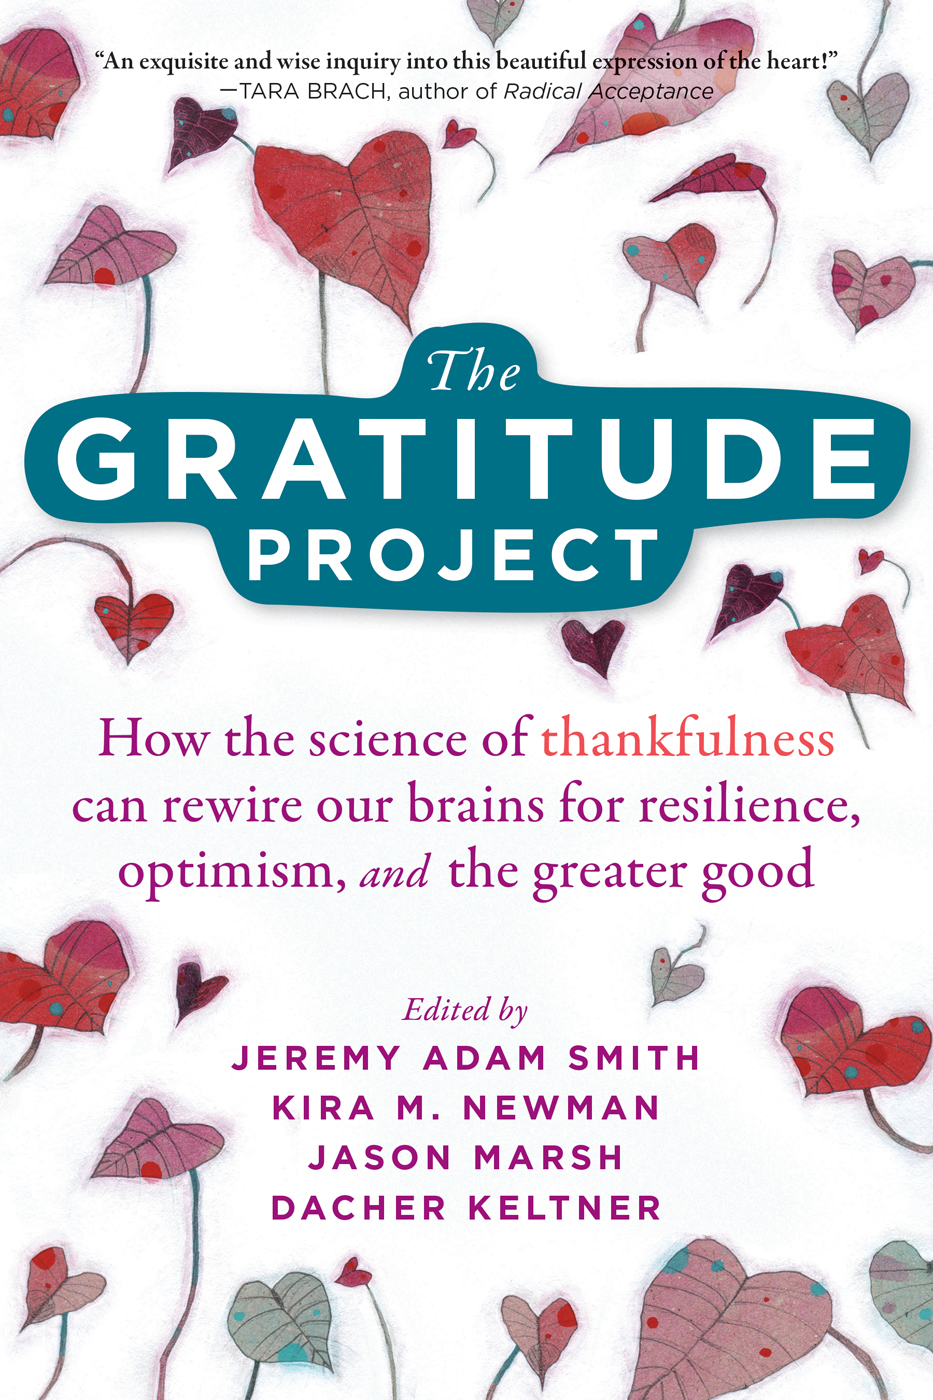 The Gratitude Project by Jeremy Adam Smith